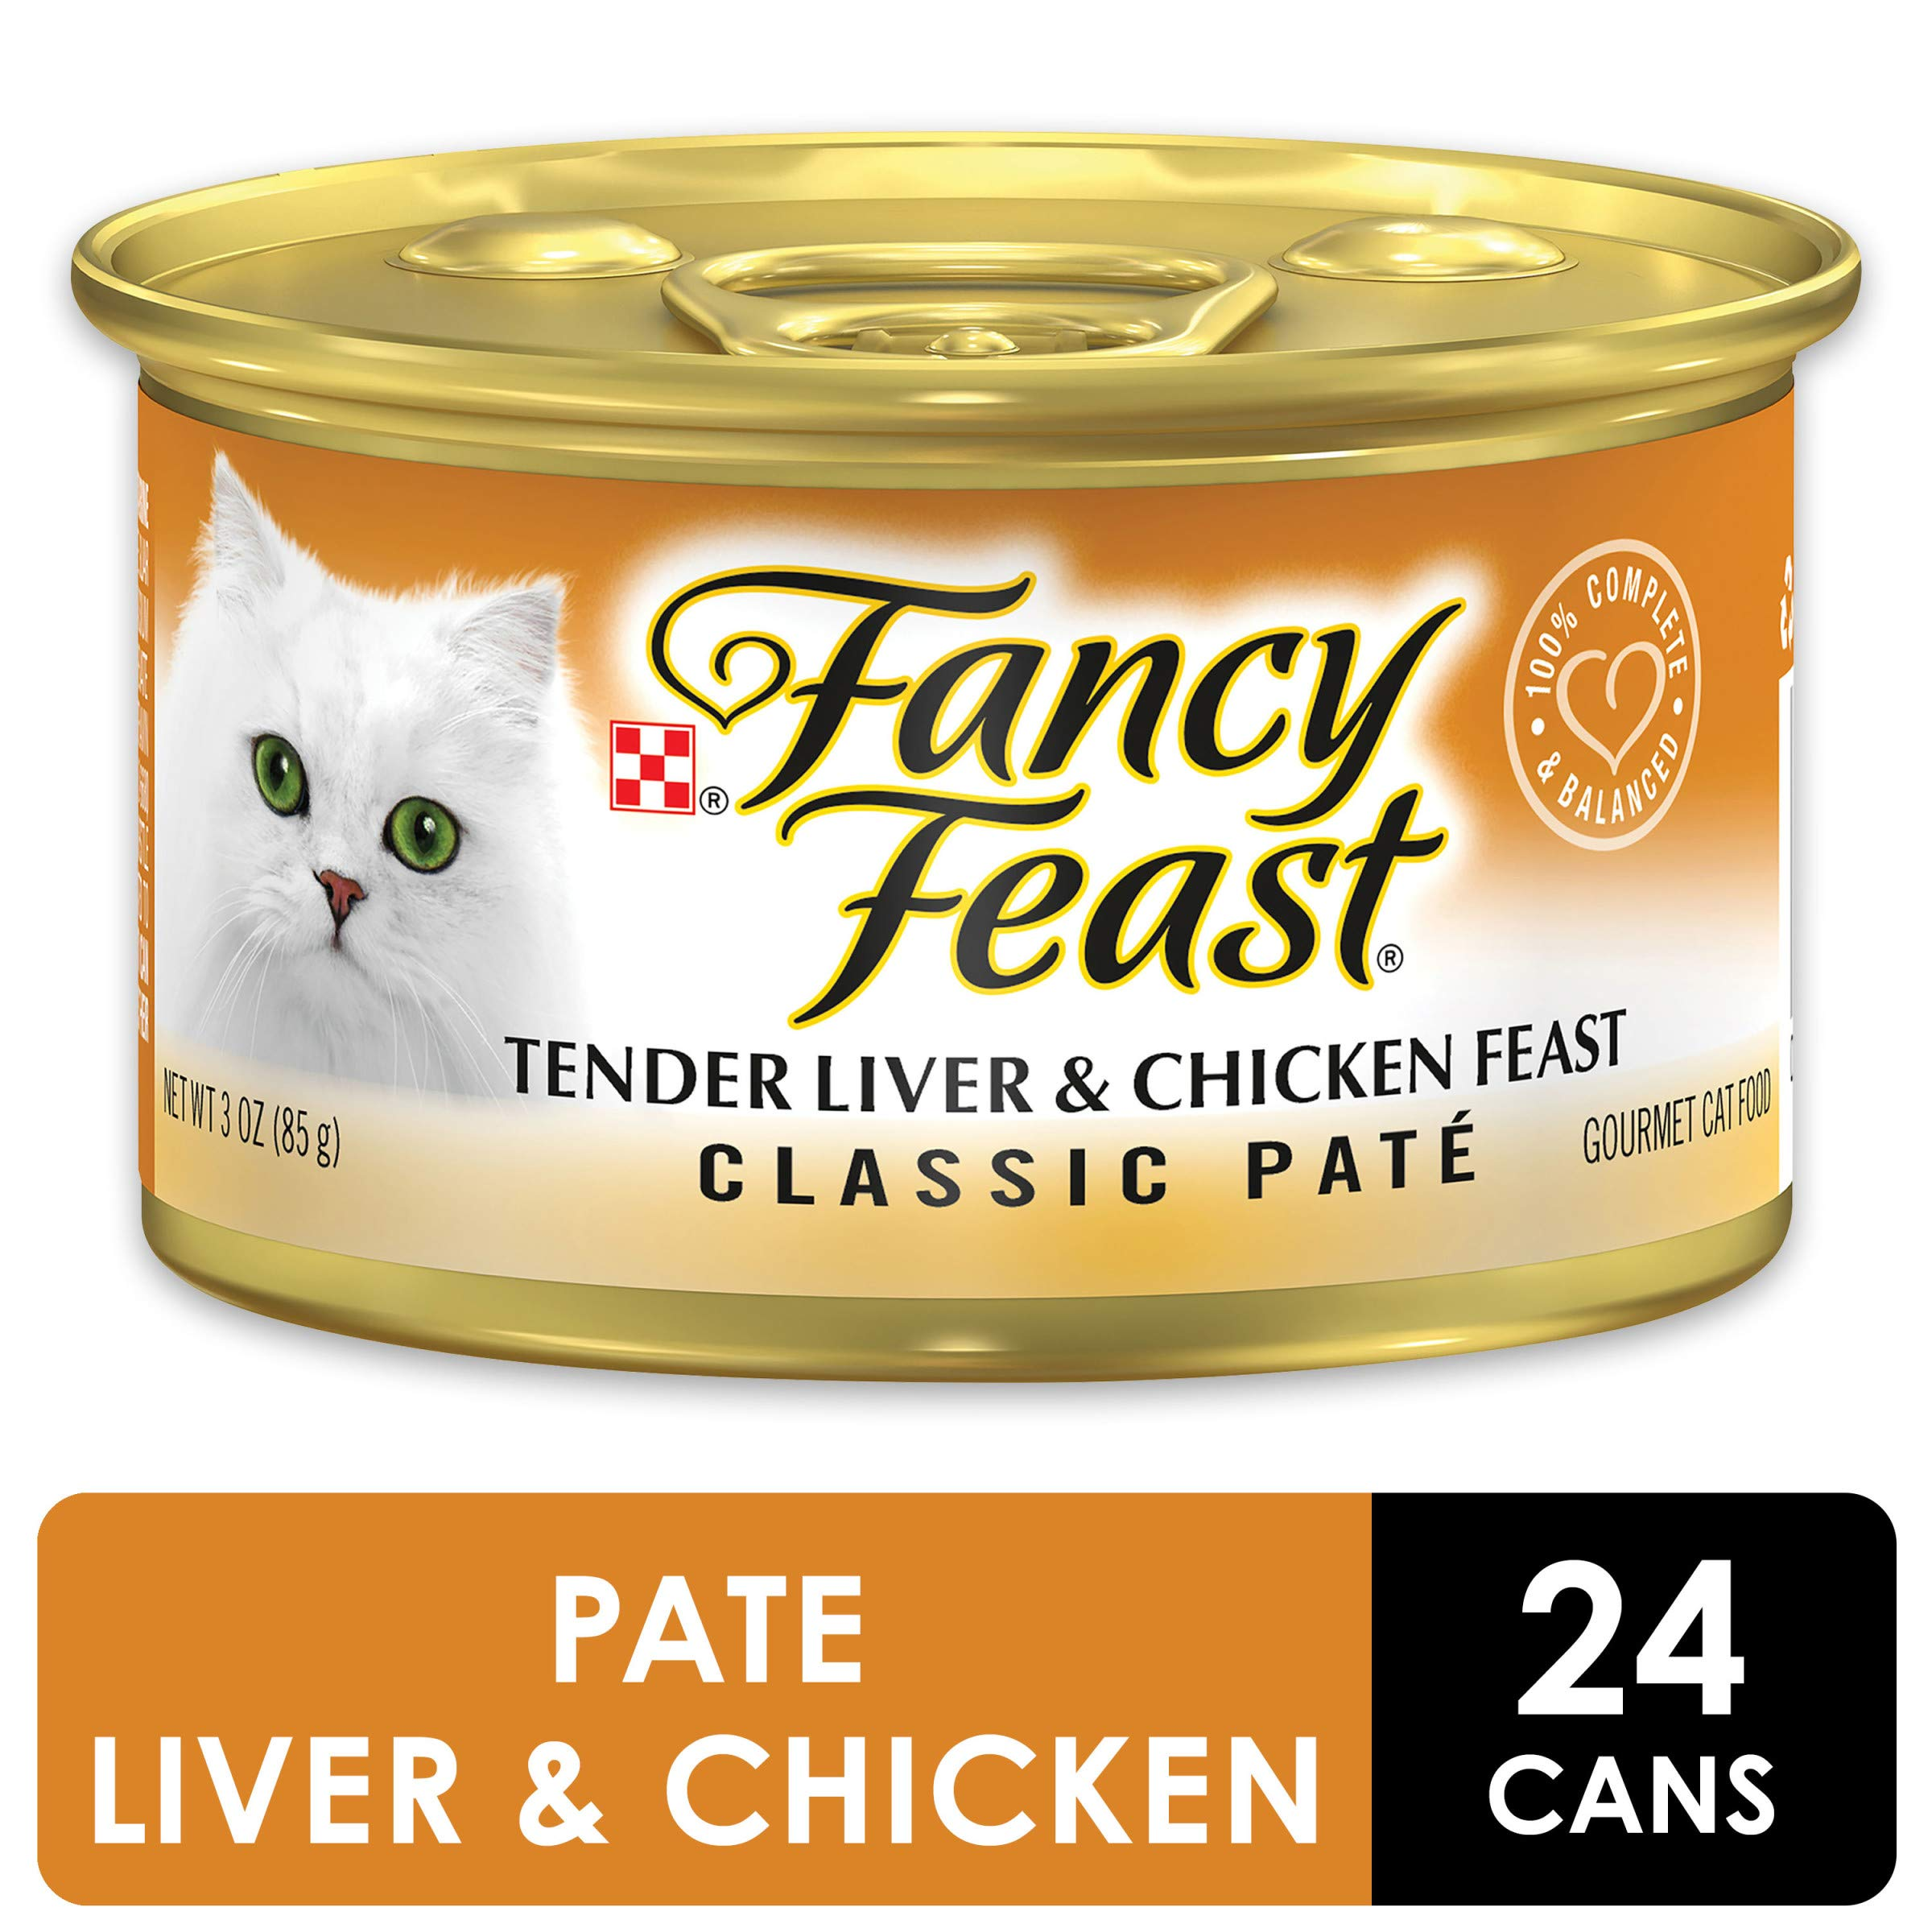 Purina Fancy Feast Grain Free Pate Wet Cat Food, Tender Liver & Chicken Feast - (24) 3 oz. Cans by Purina